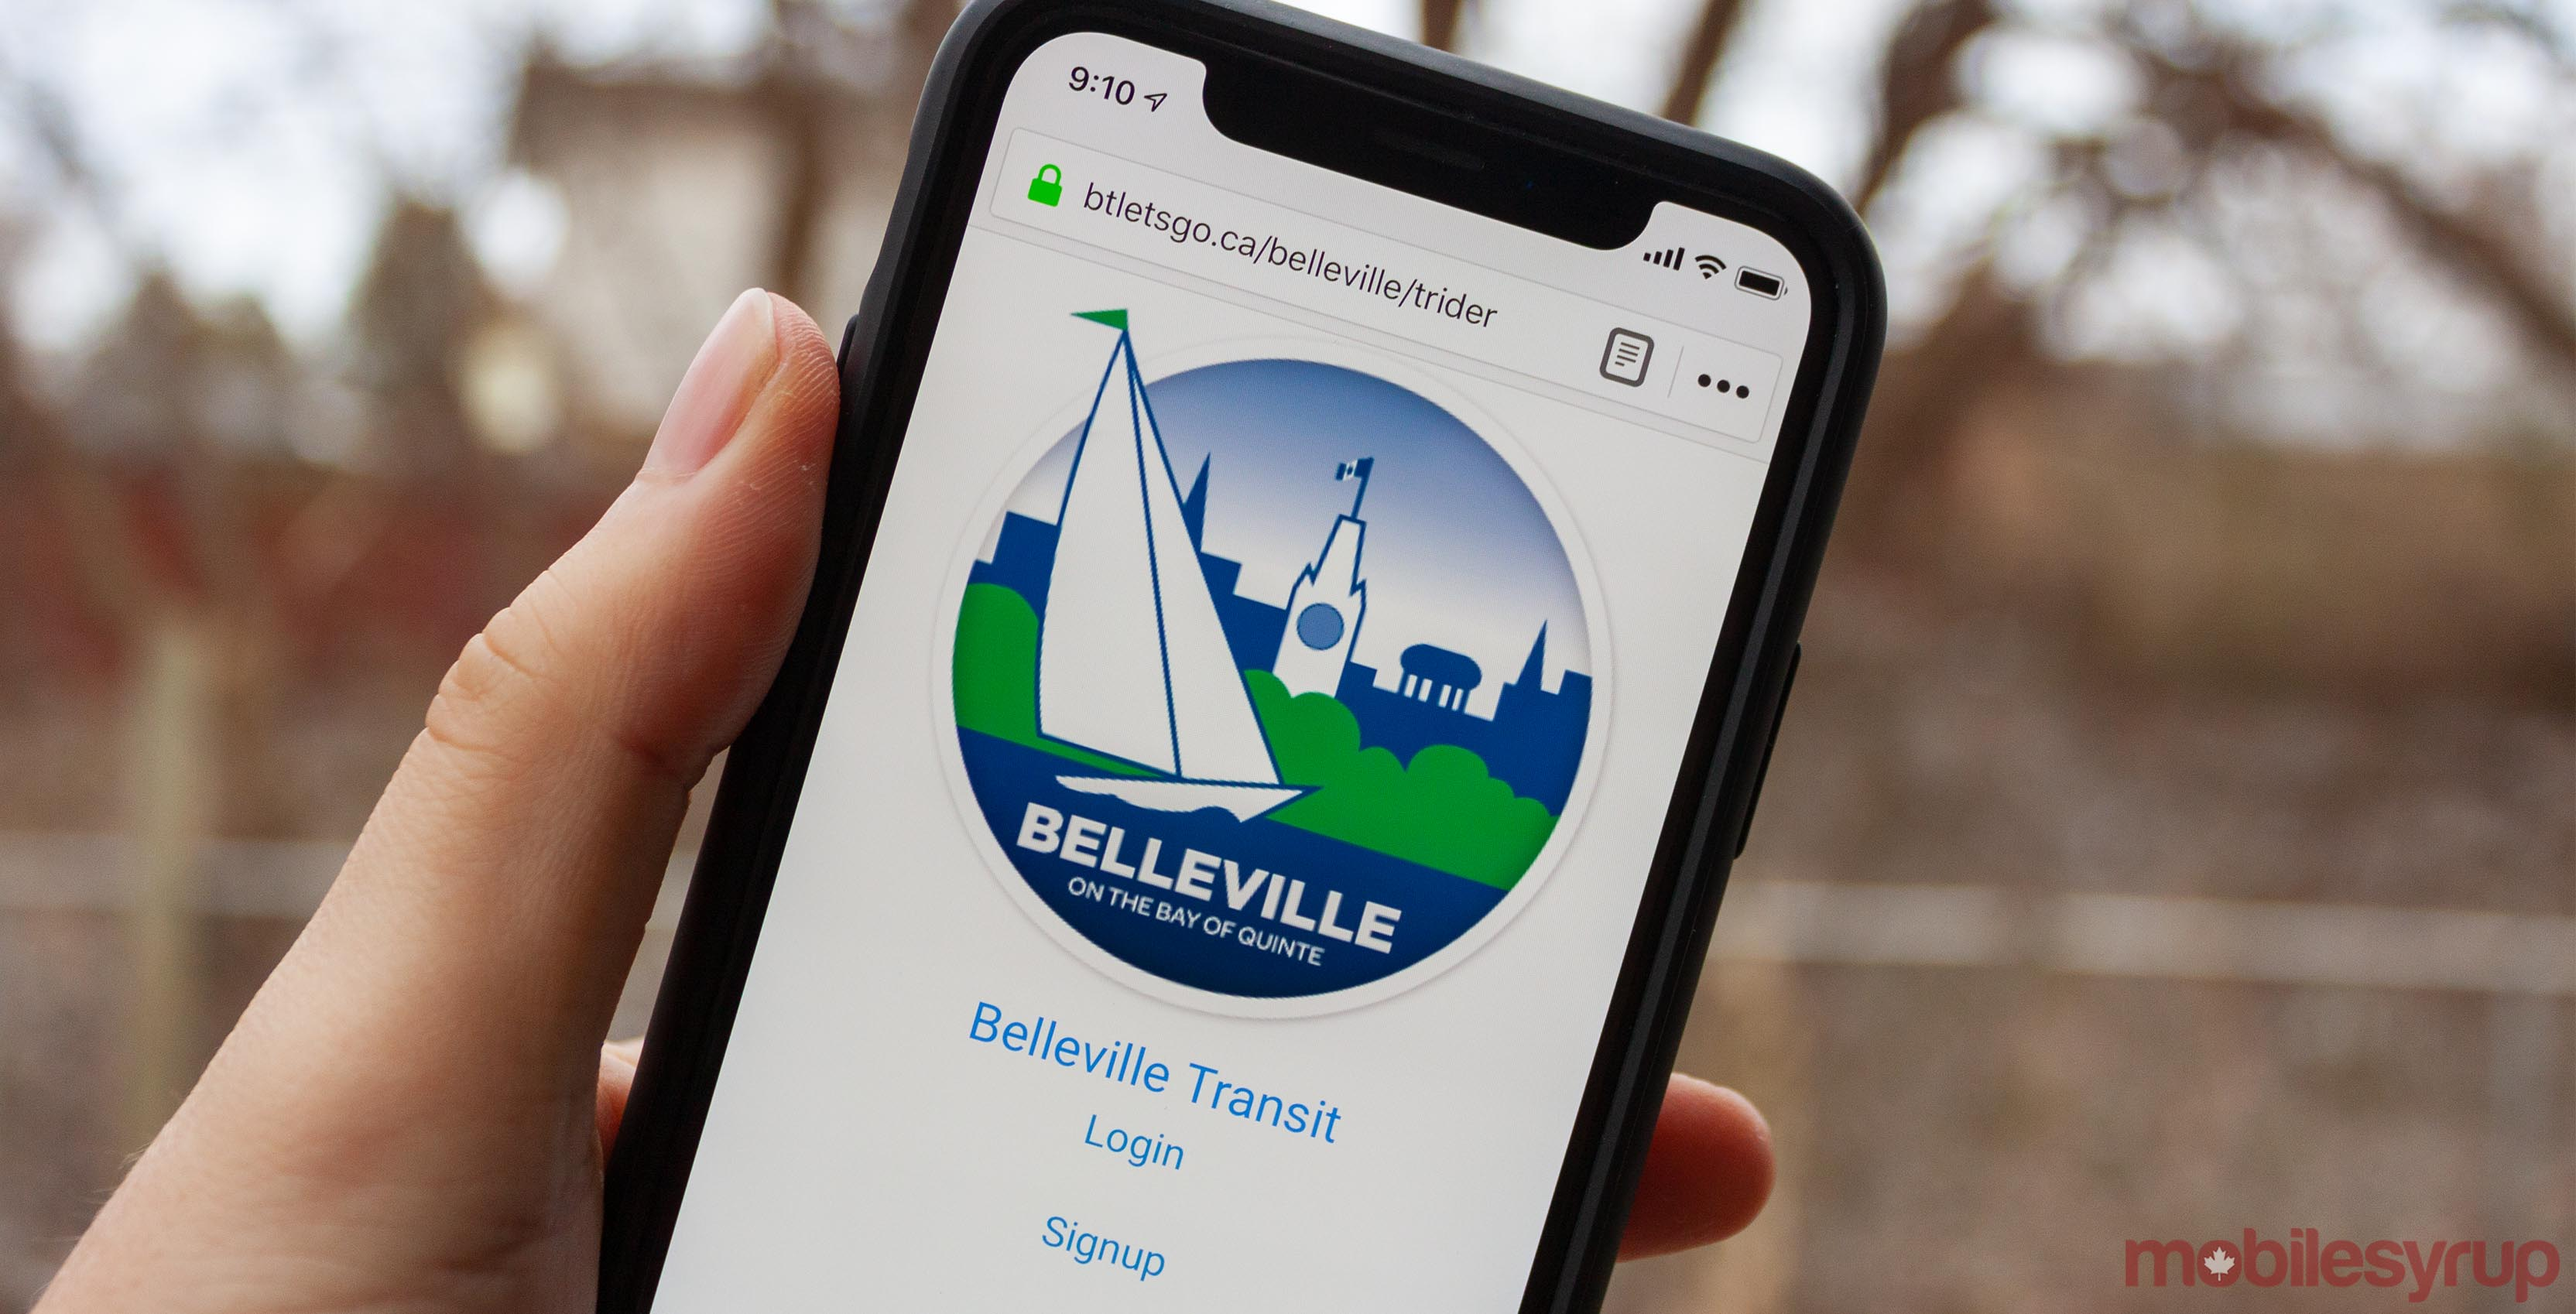 Belleville transit website